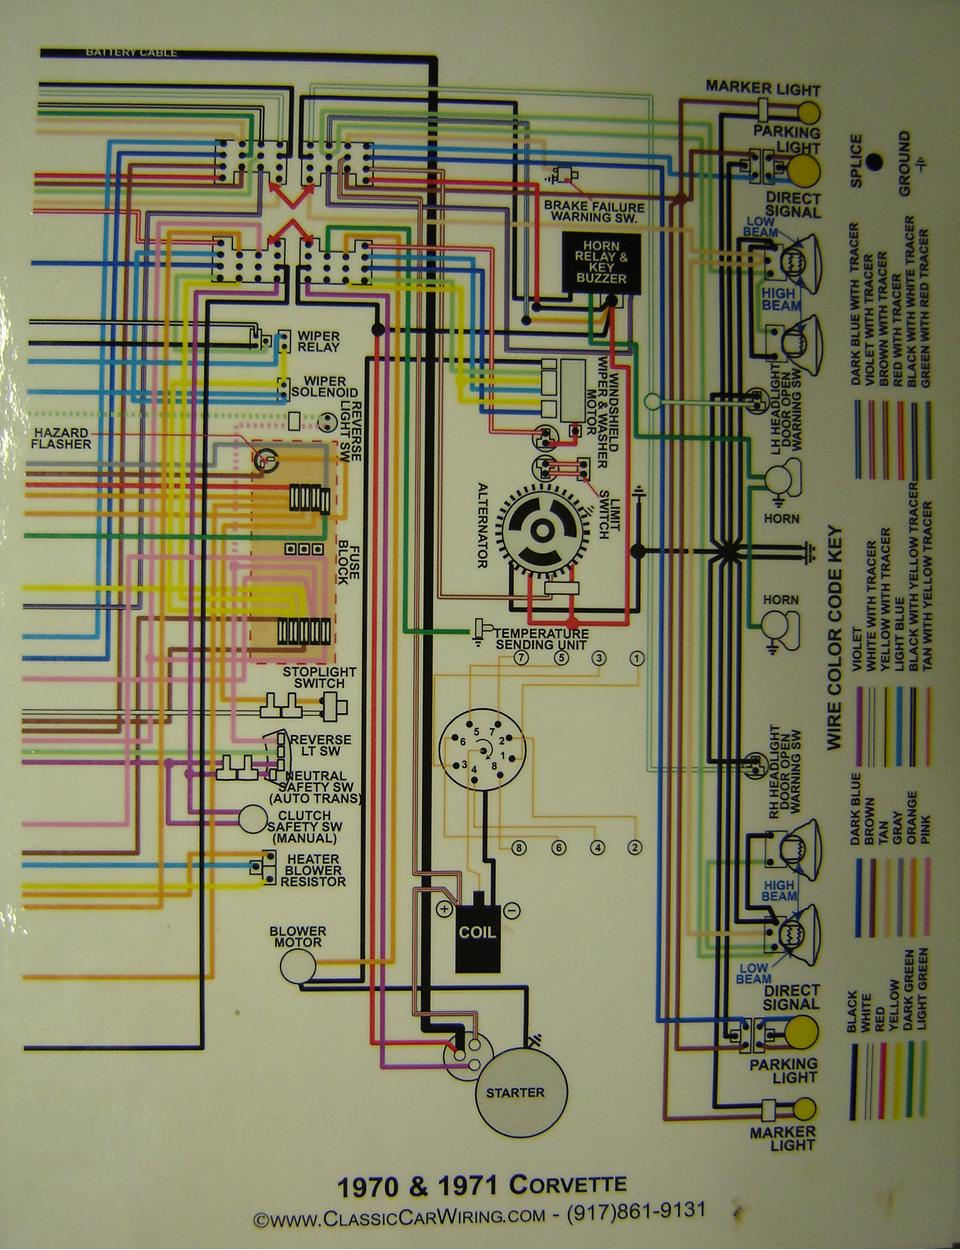 1970 71 corvette color wiring diagram B 1984 corvette wiring diagram free 1986 corvette wiring diagrams 1978 corvette wiring harness at bakdesigns.co